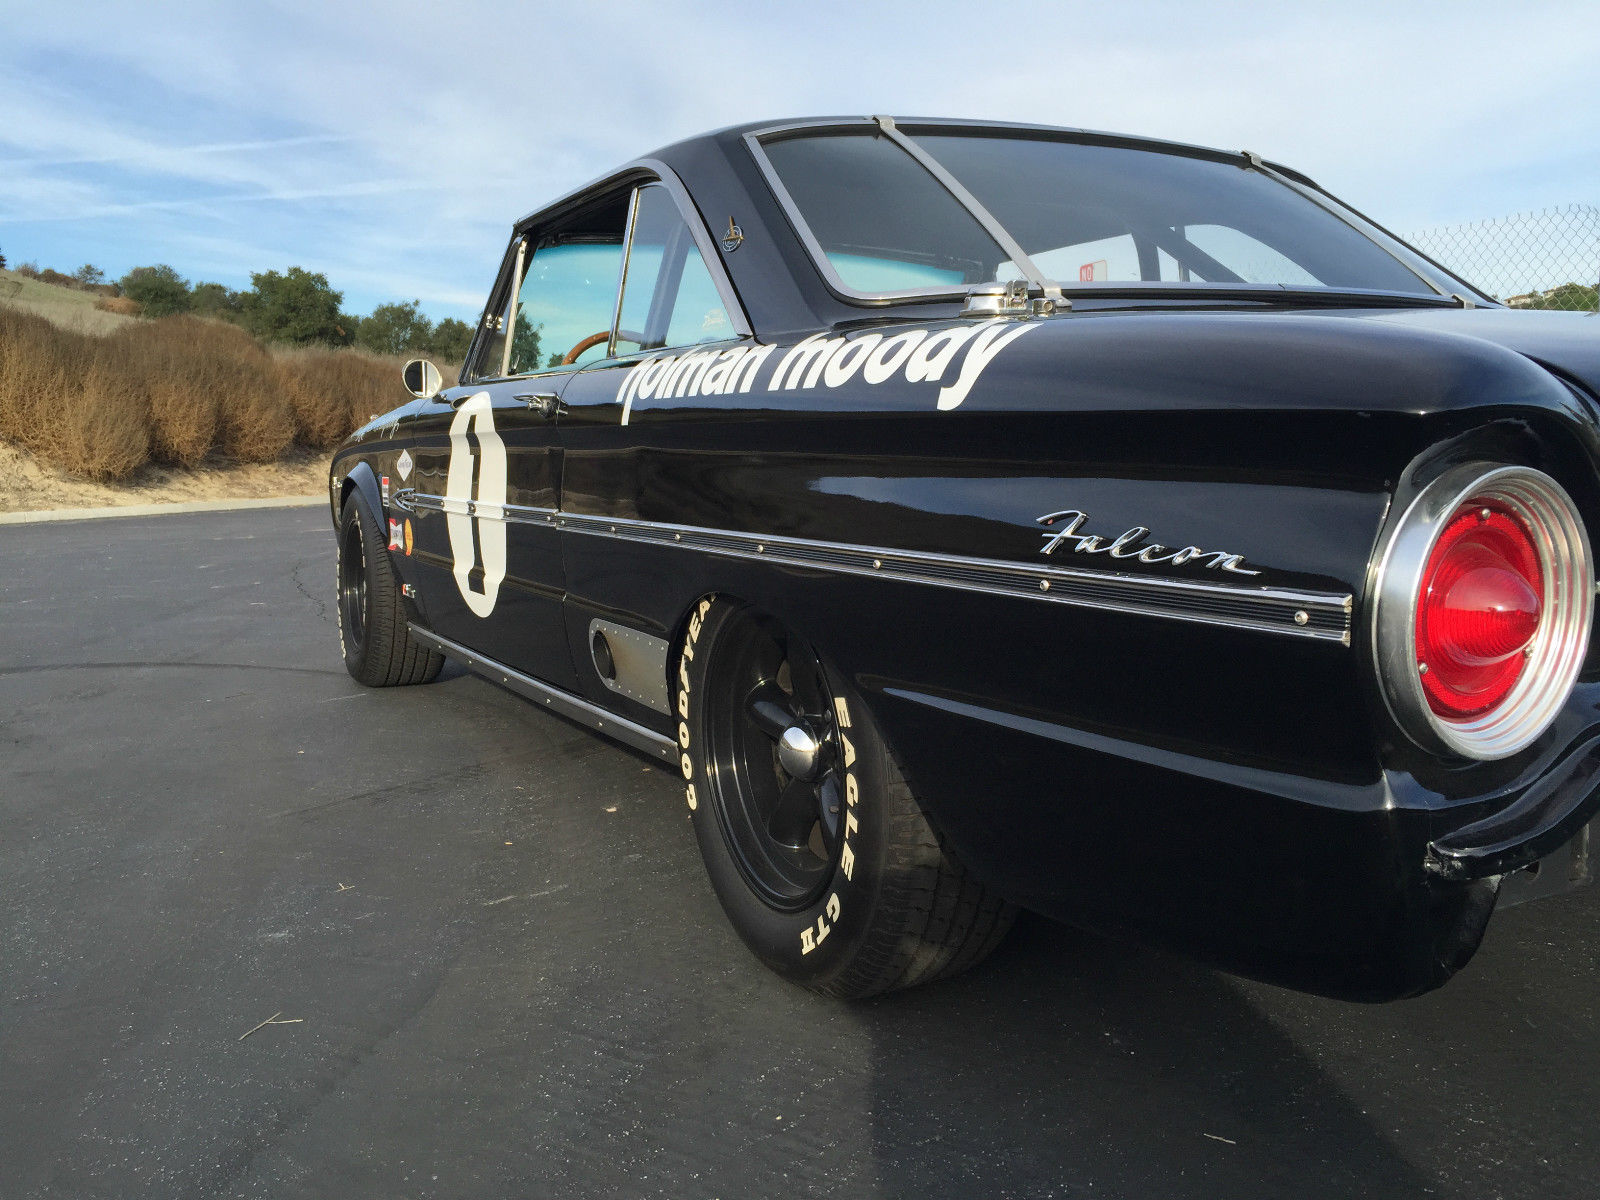 1963 Ford Falcon Futura Convertible additionally 1963 Ford Falcon 2 Door Hardtop also 1969 Ford Falcon 2 Door Coupe That's Been Restored furthermore 1960 Ford Thunderbird Interior furthermore 1963 1 2 Ford Falcon Sprint V8. on 1963 ford falcon sprint specifications